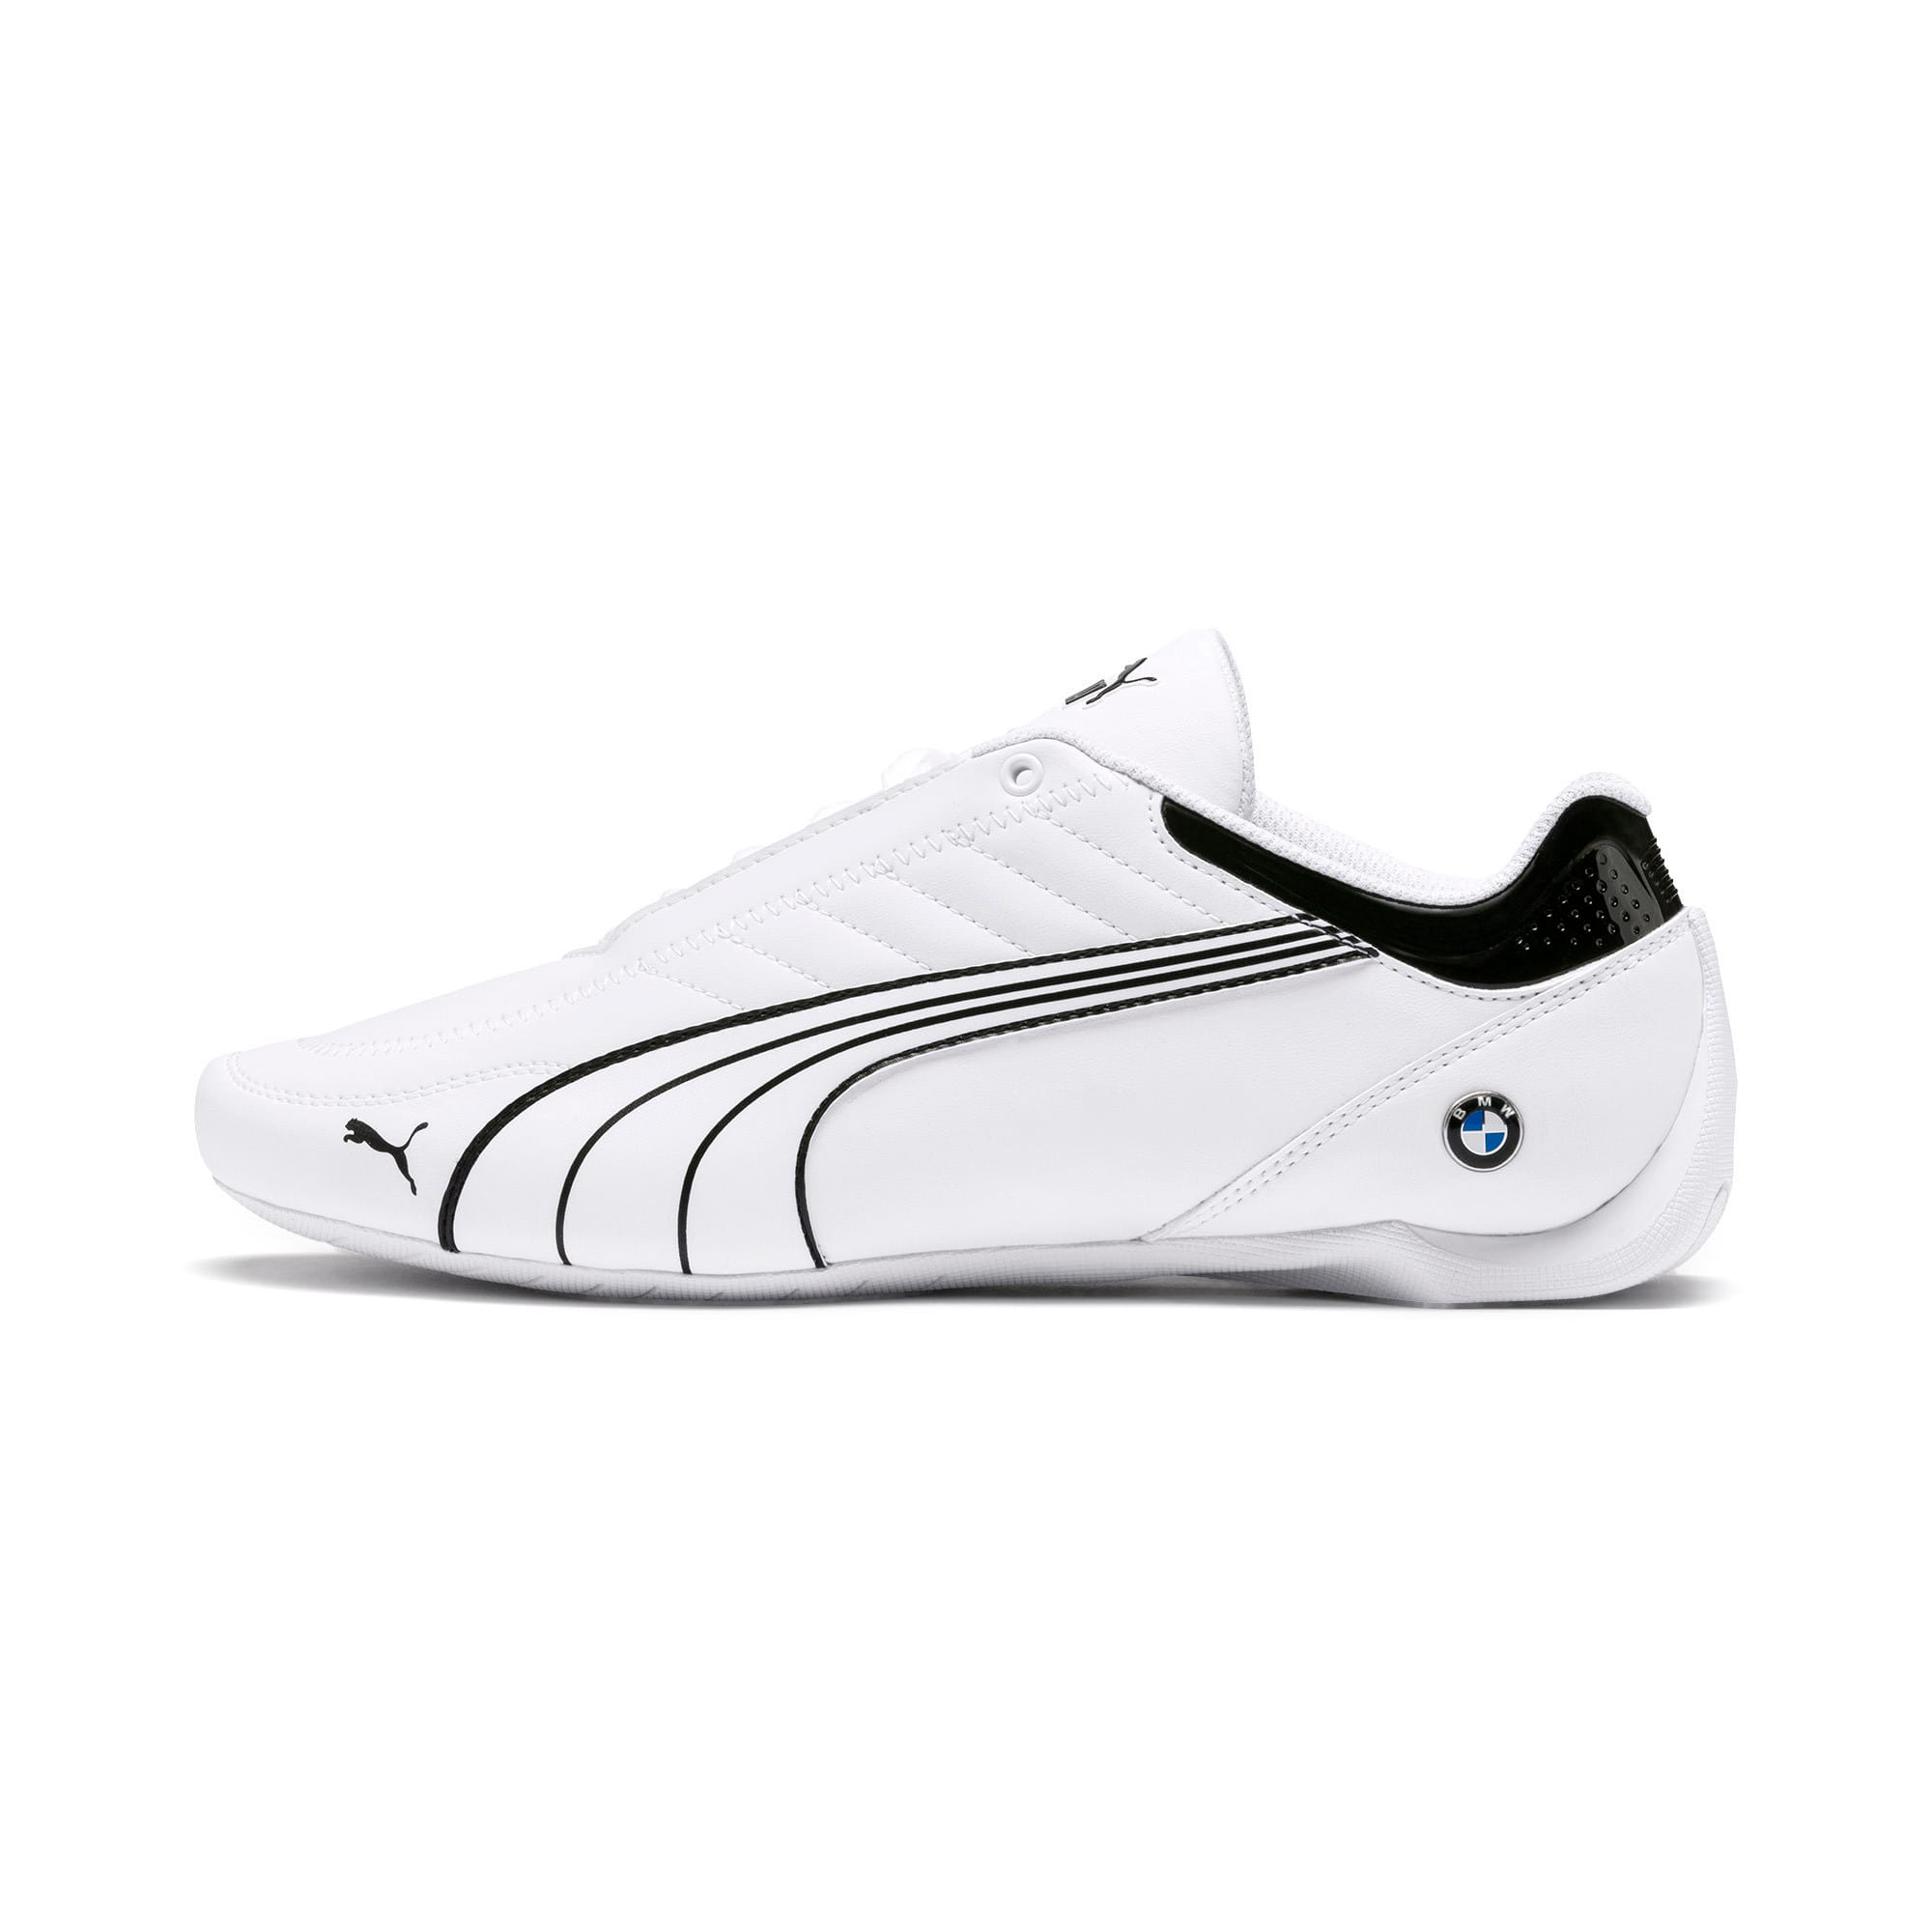 Miniatura 1 de Zapatos BMW M Motorsport Future Kart Cat, Puma White-Puma Black, mediano